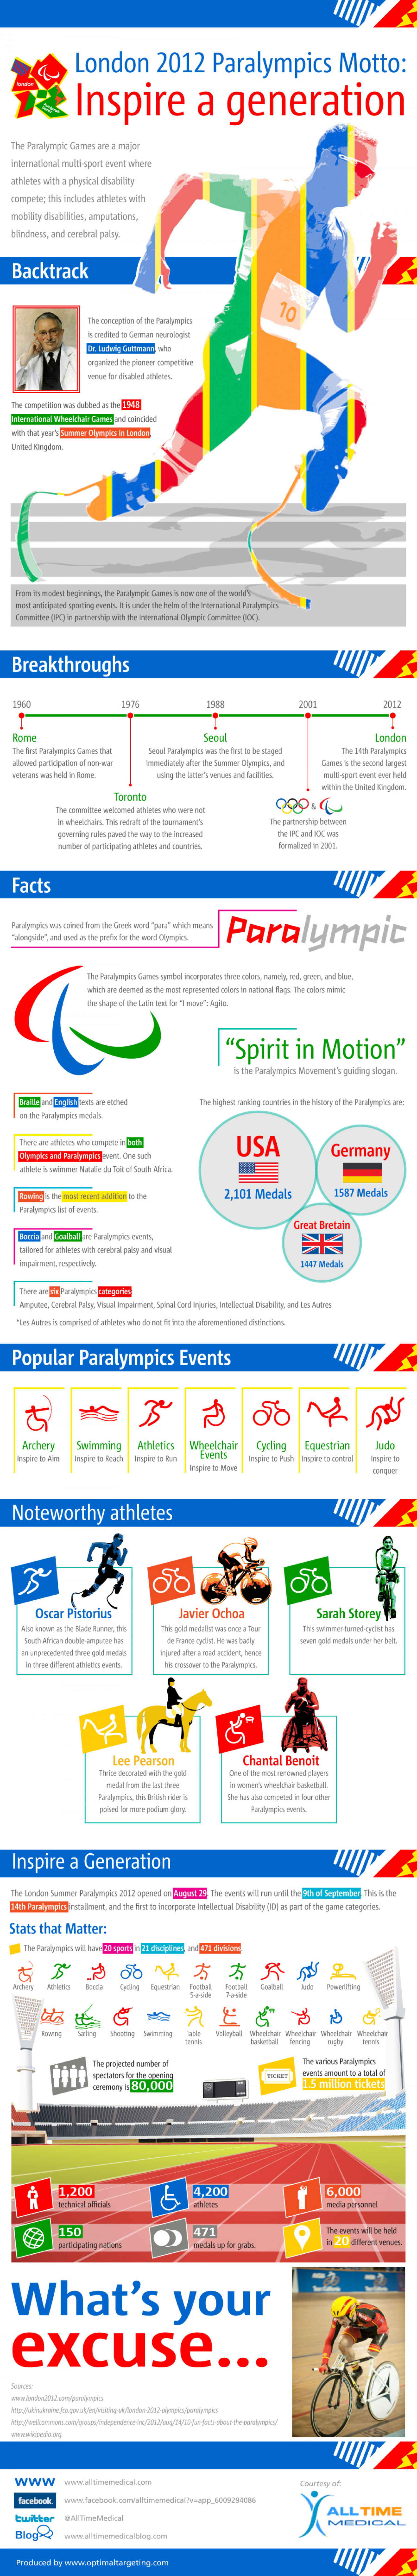 The 2012 Paralympics: Inspire a Generation Infographic